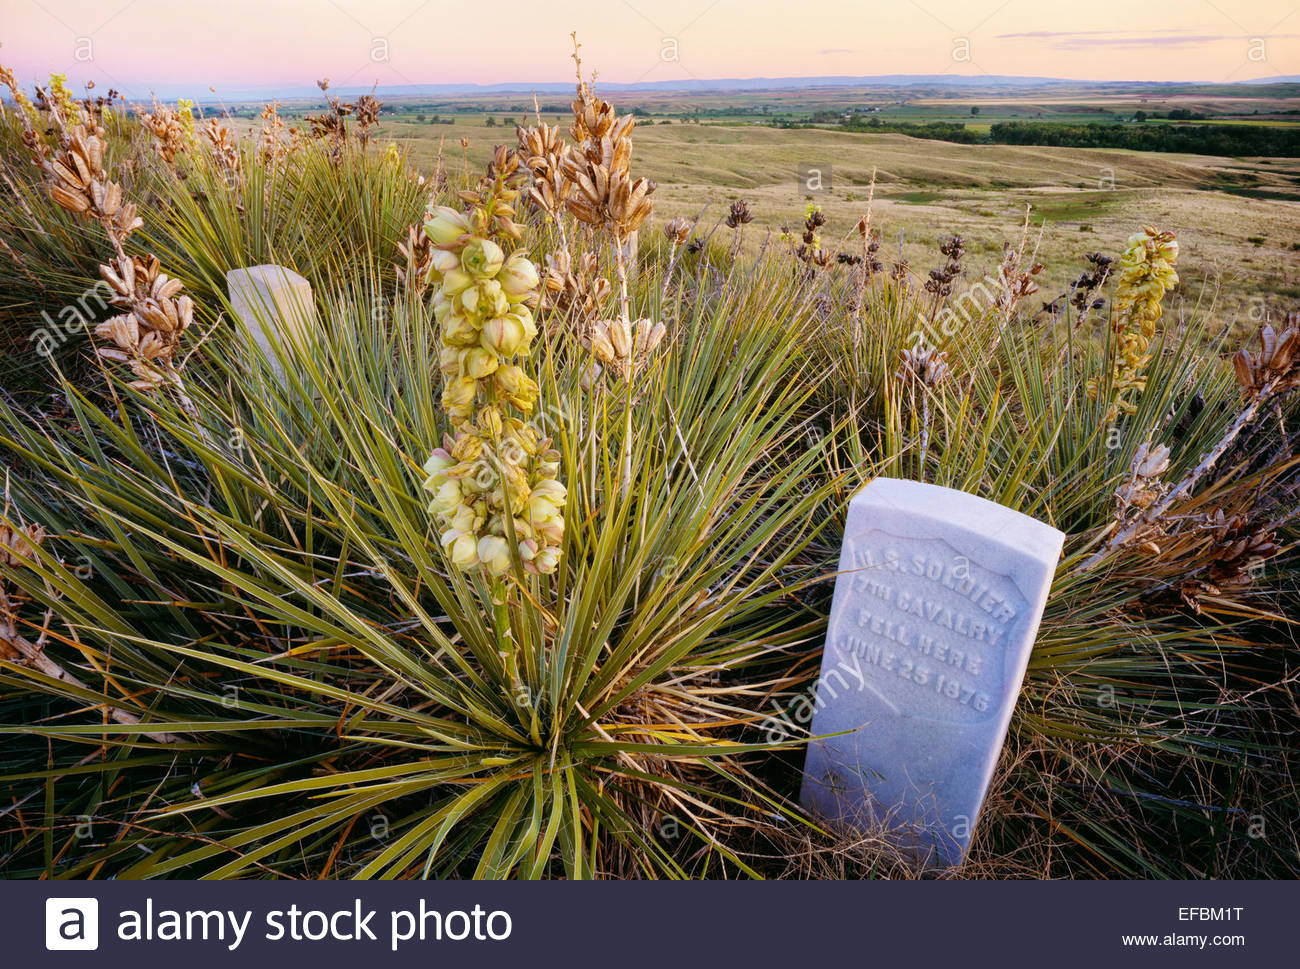 Memorial Marker für ungenannte US-Soldat, Little Bighorn Battlefield National Monument, Montana. Stockbild